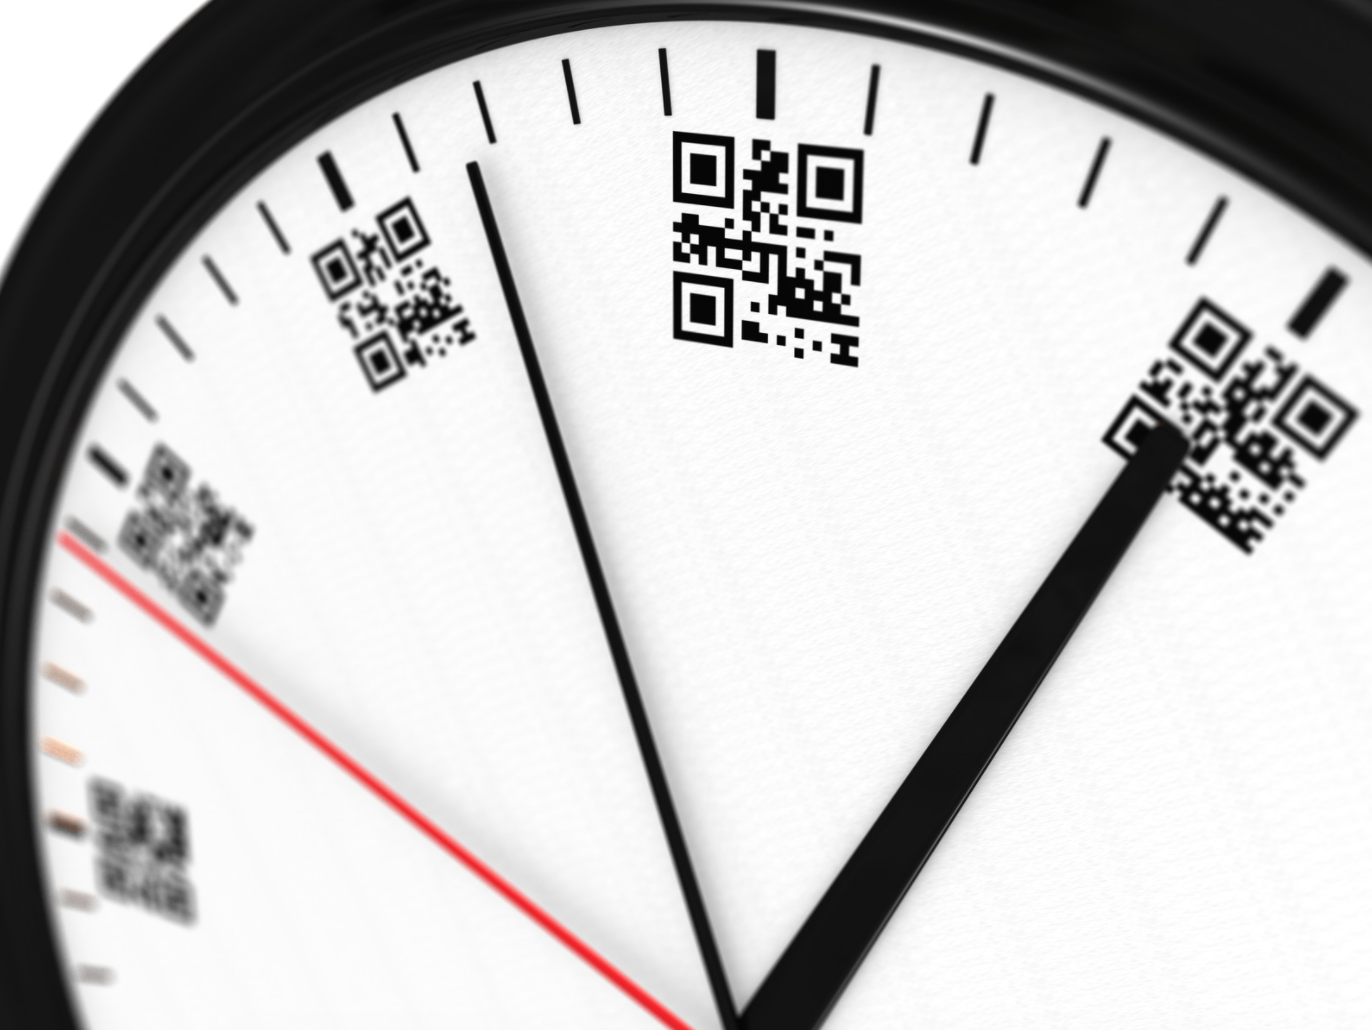 QR codes on the clock face